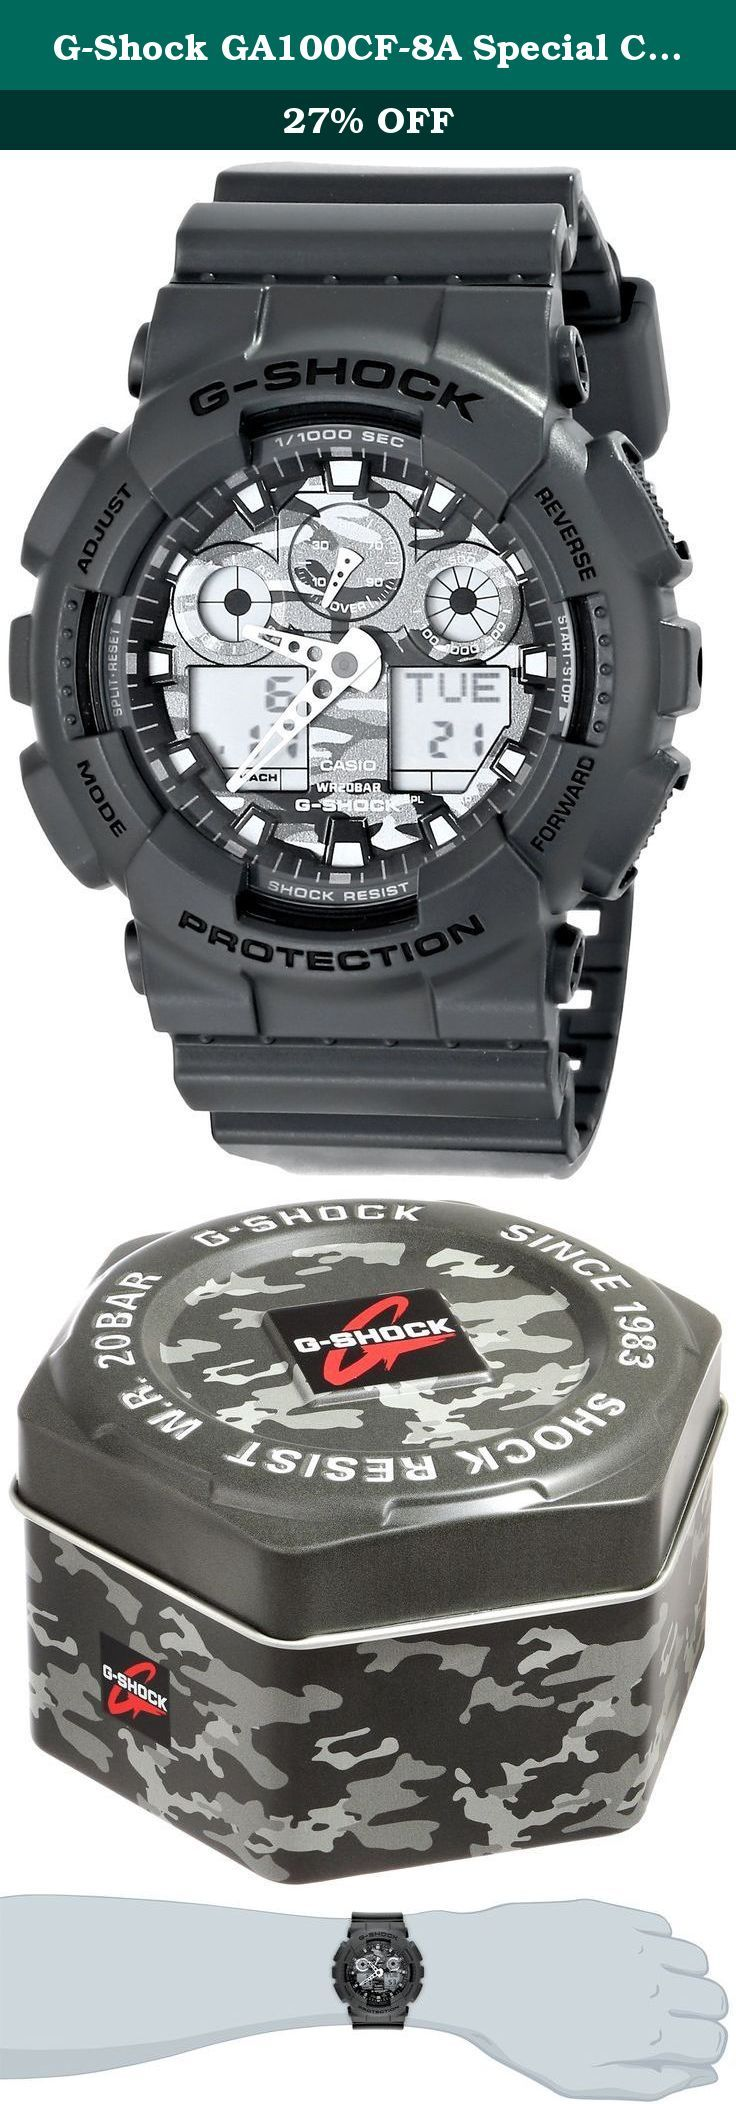 "G-Shock GA100CF-8A Special Color Models Luxury Watch - Grey/Camouflage / One Size. For 25 years Casio G-Shock digital watches are the ultimate tough watch. Providing durable, waterproof mens digital watches for every activity. G-Shock is the ultimate tough watch. It was born from a developer's dream of ""creating a watch that never breaks."" Guided by a ""Triple 10"" development concept, the design teams sought a watch with 10-meter free-fall endurance, 10-bar water resistance and a 10-year..."